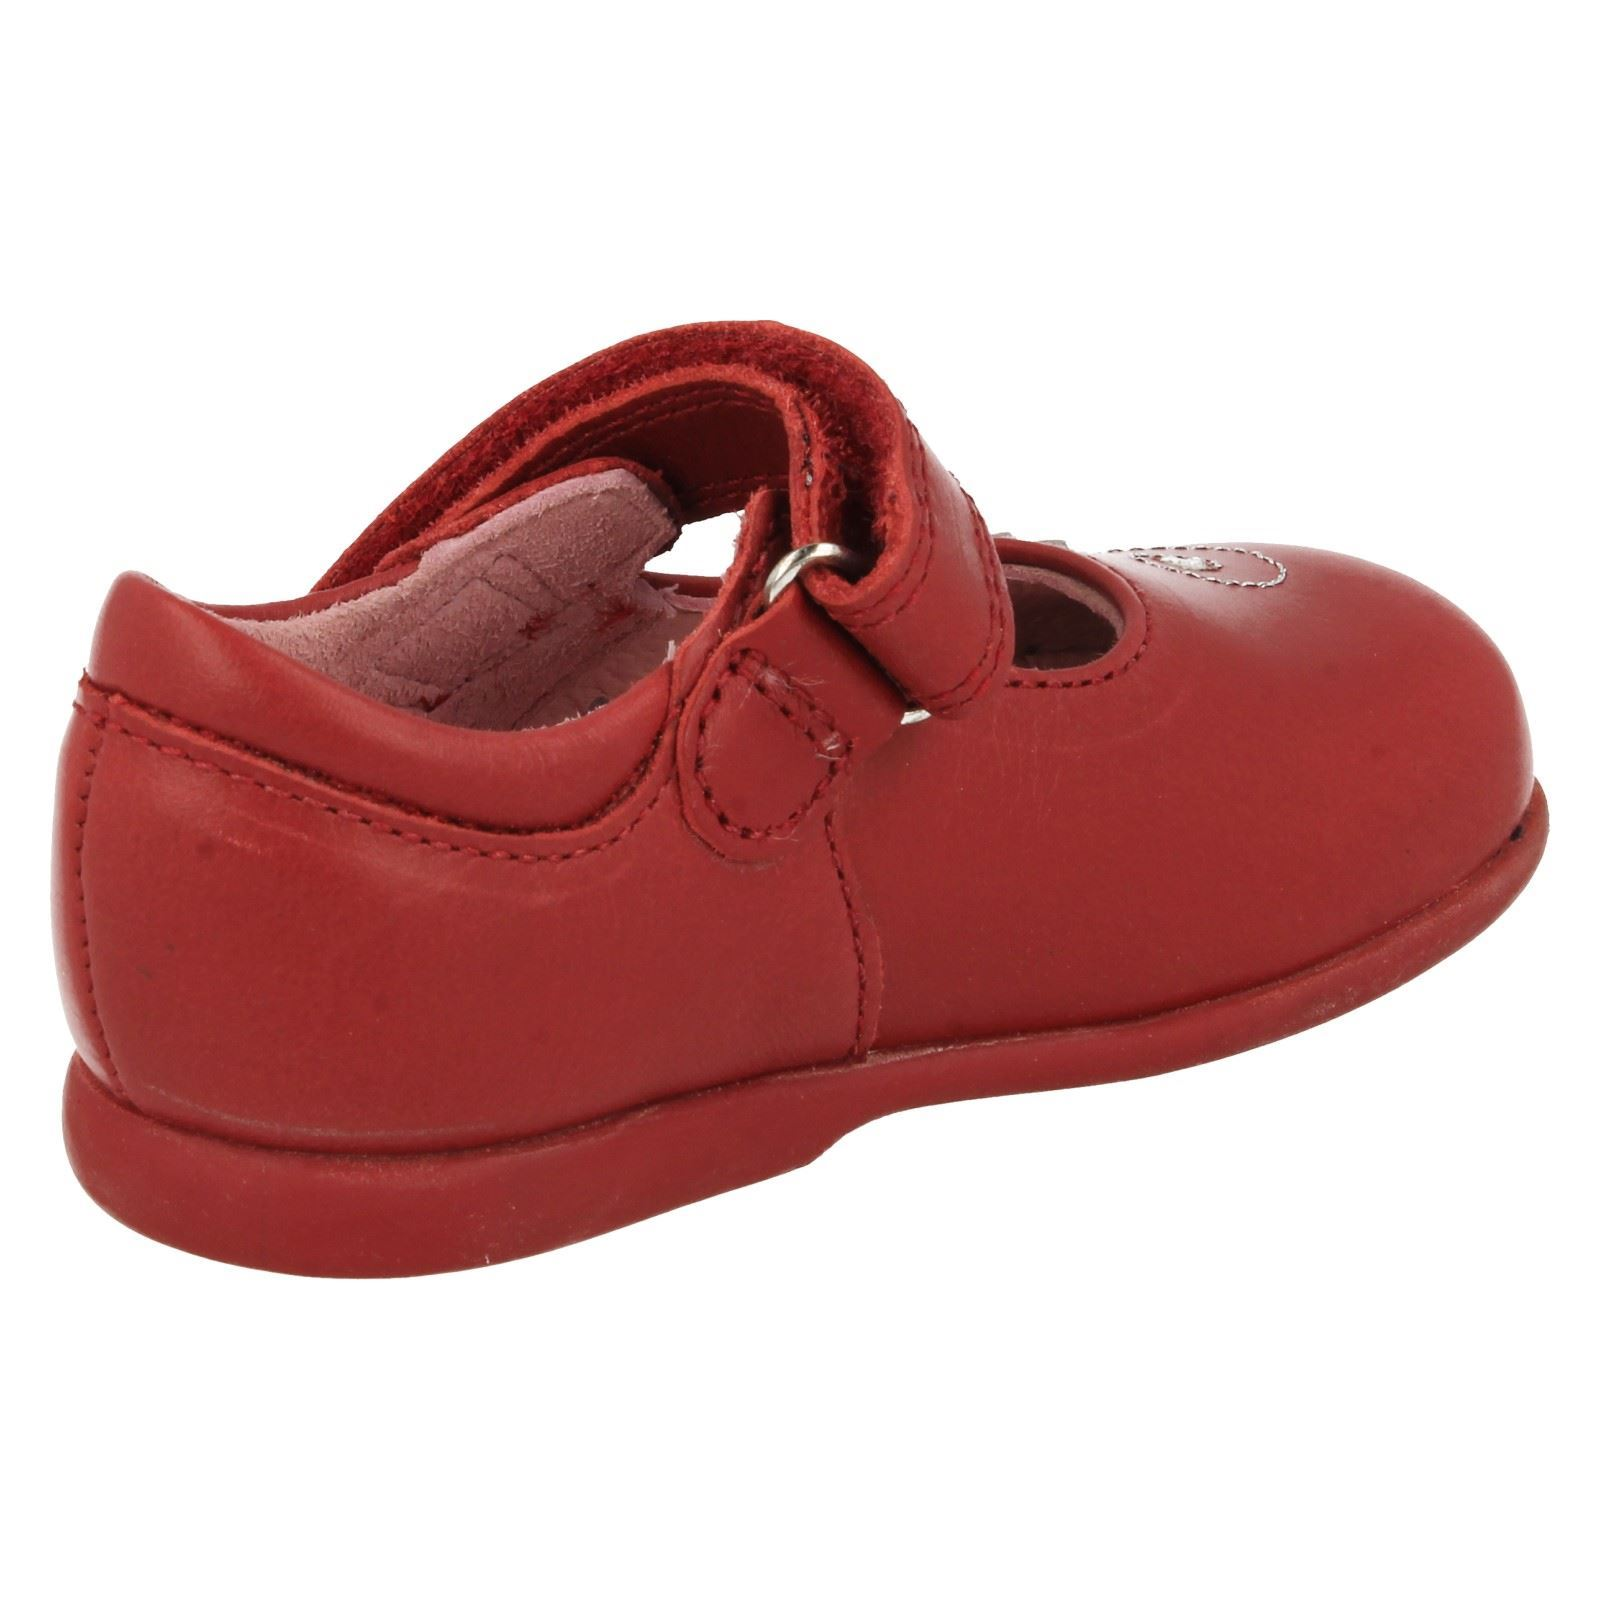 Girls Start Rite First Shoes Style Lily -W